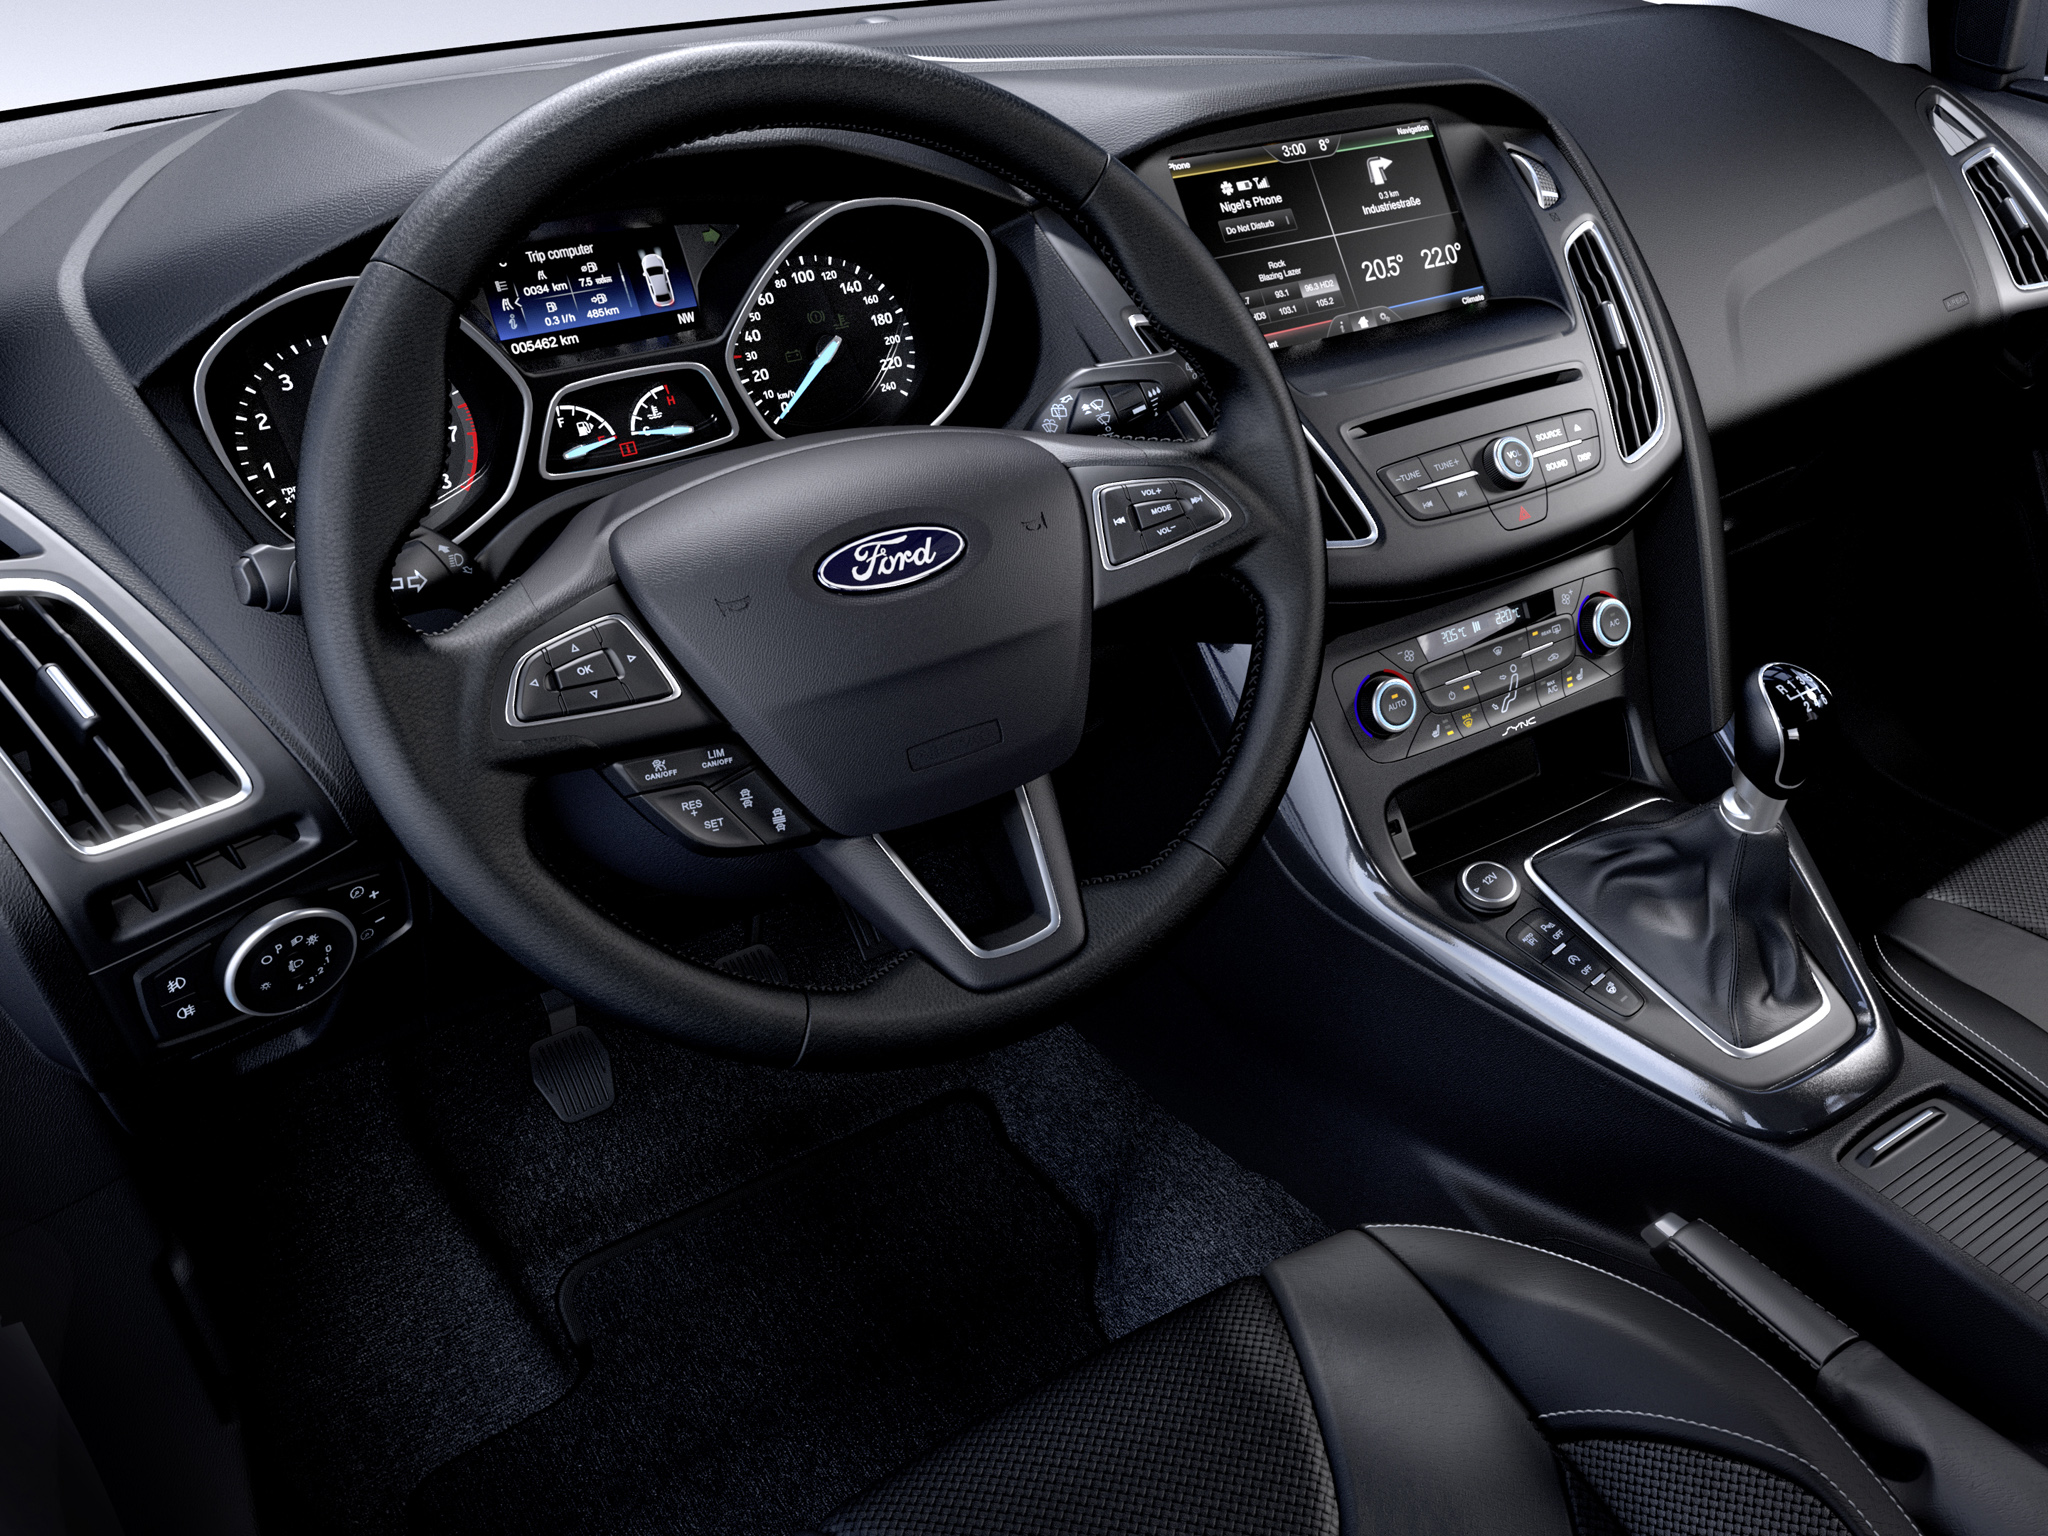 2014 Ford Focus Estate Touring Leaked Photos Show New Interior And